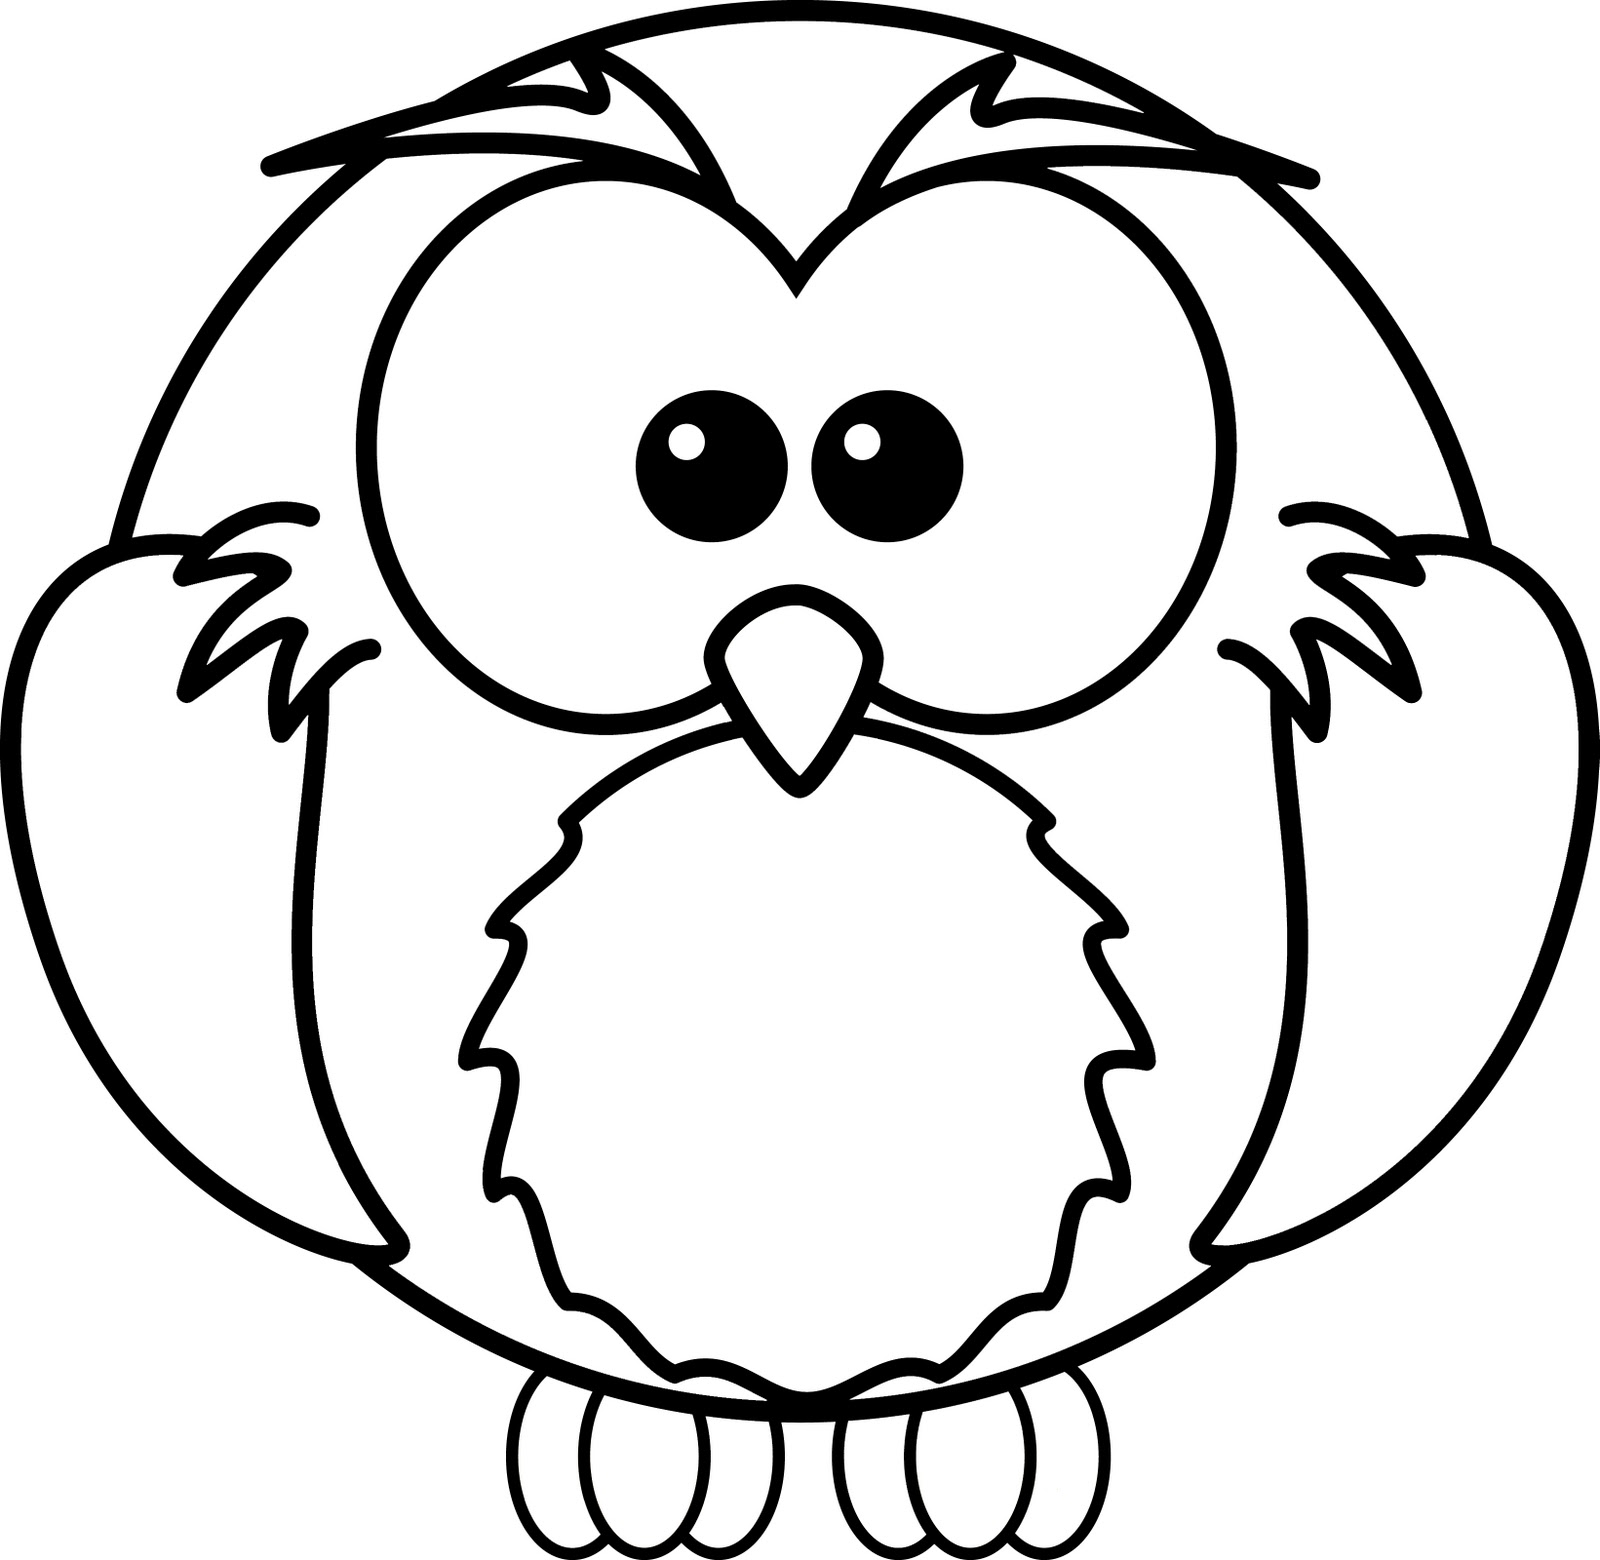 coloring pictures of owls owl with rose coloring page free printable coloring pages of pictures coloring owls